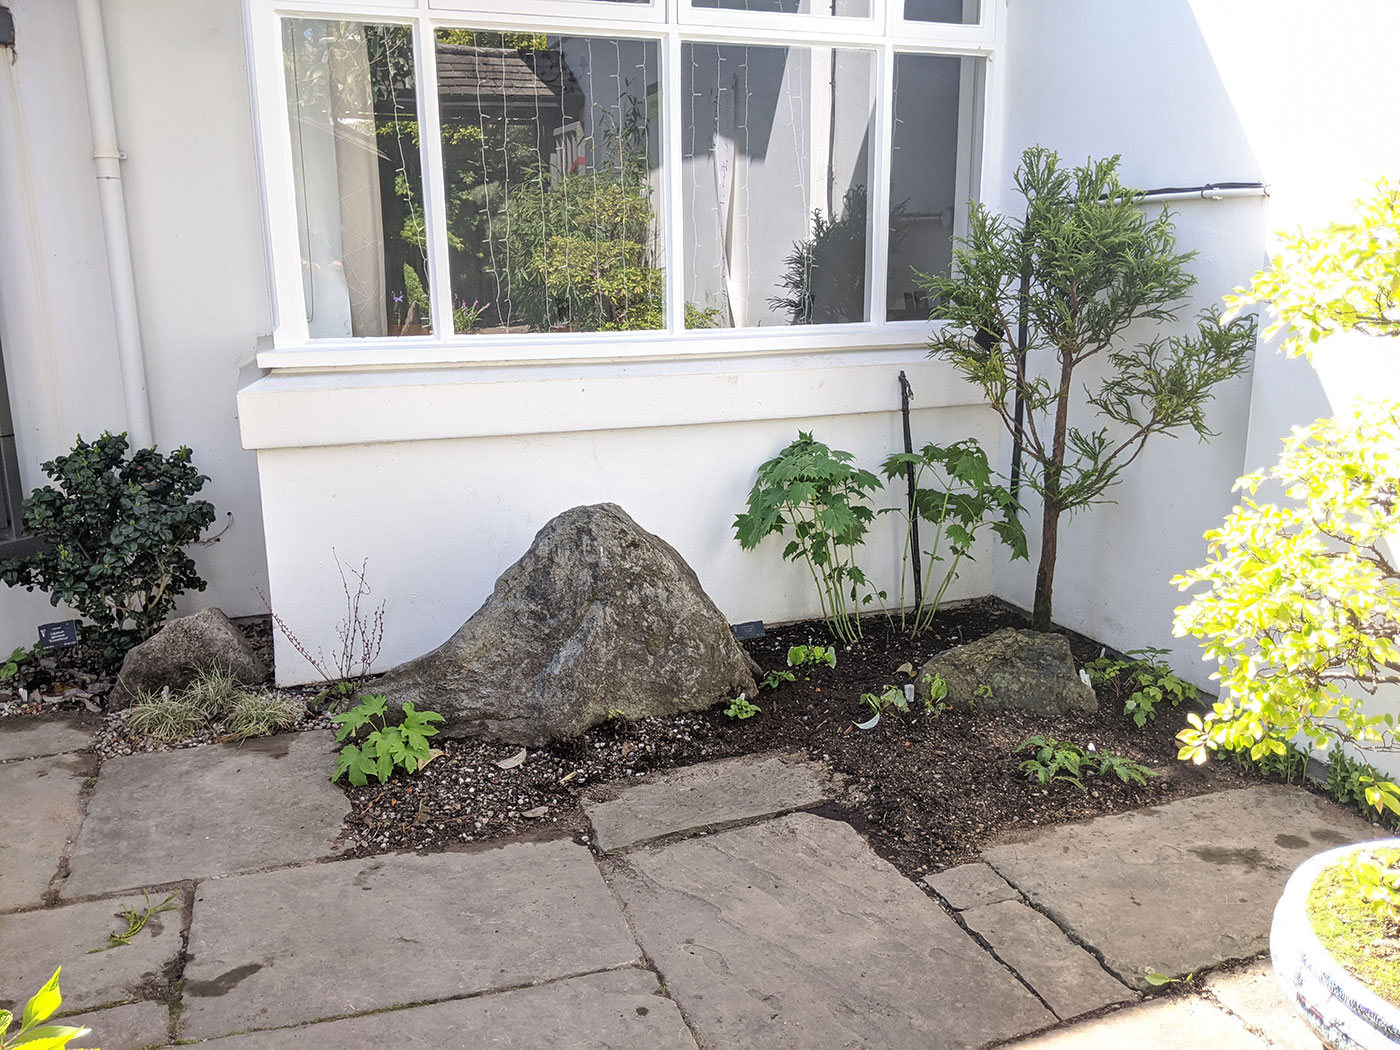 The woodlanders are planted and an extra rock is strategically placed